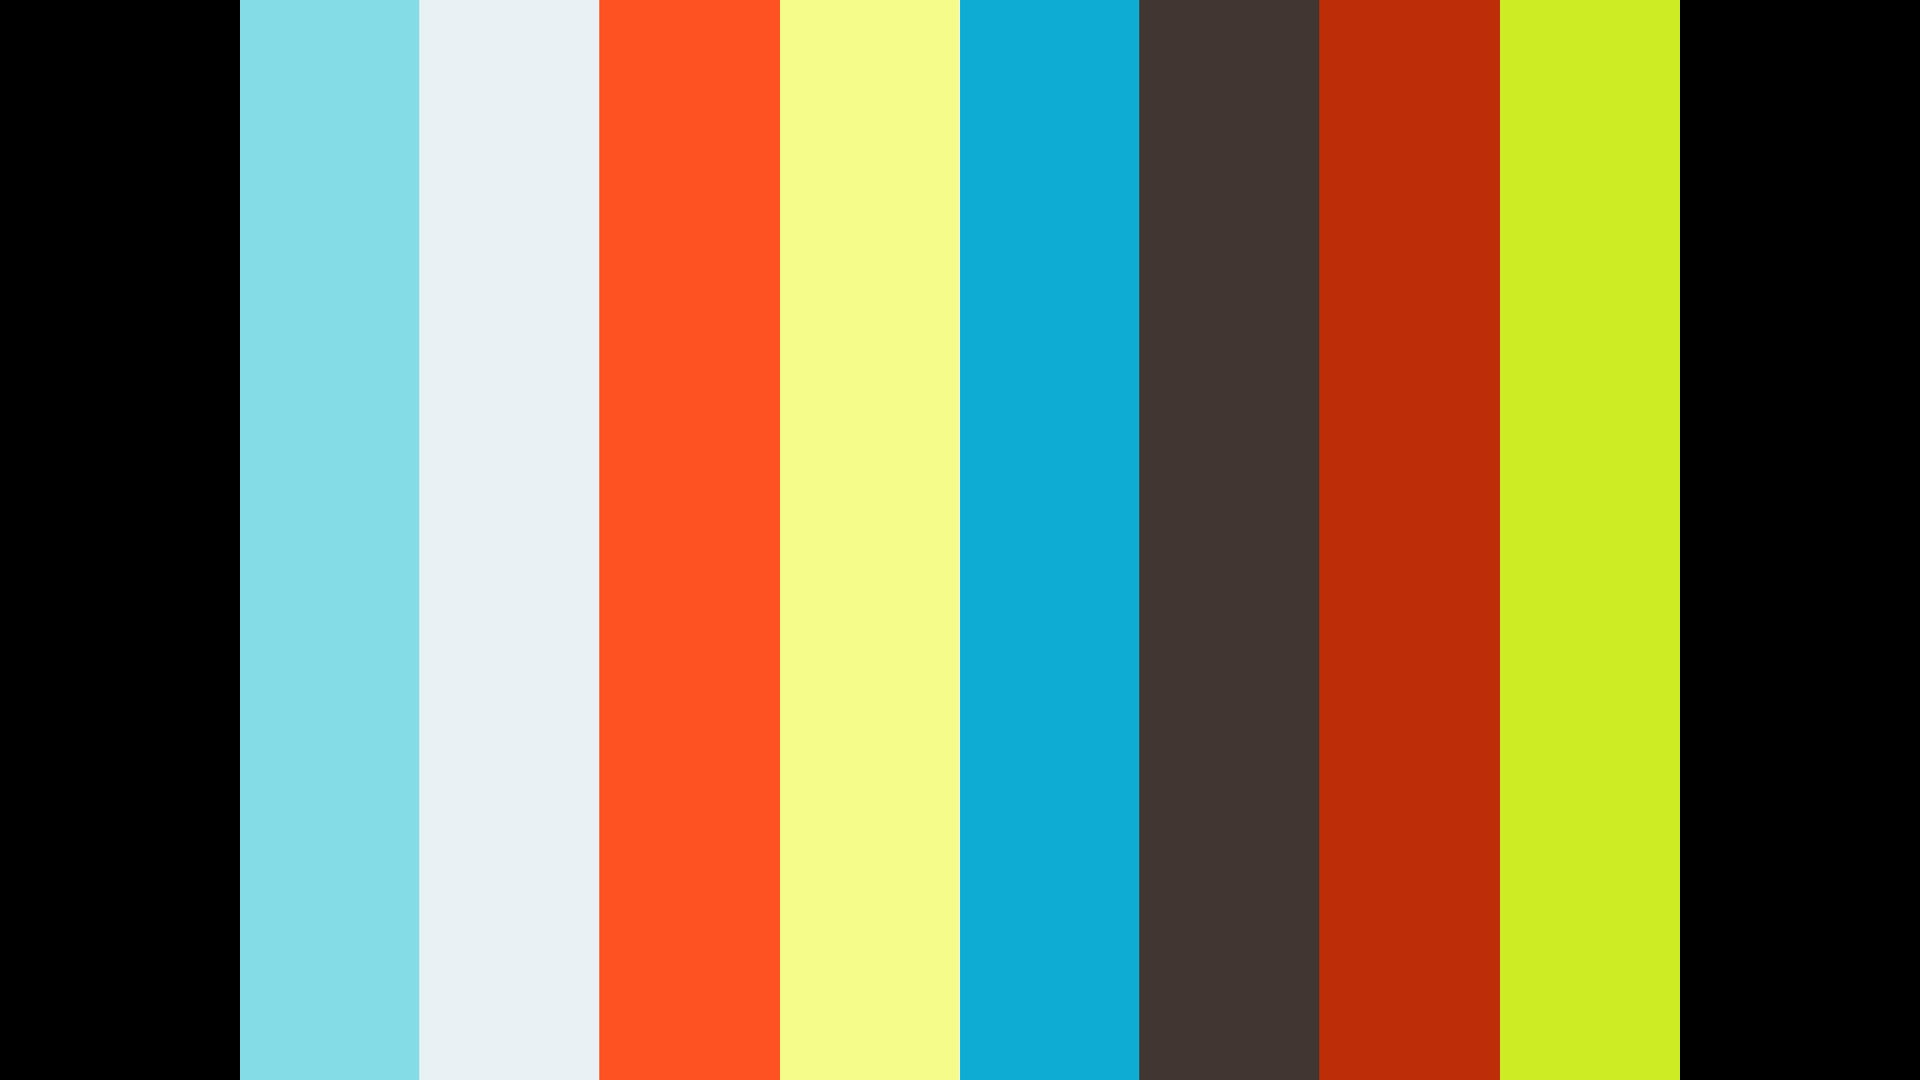 LED Tickers At Harrods, Europe's Largest Department Store